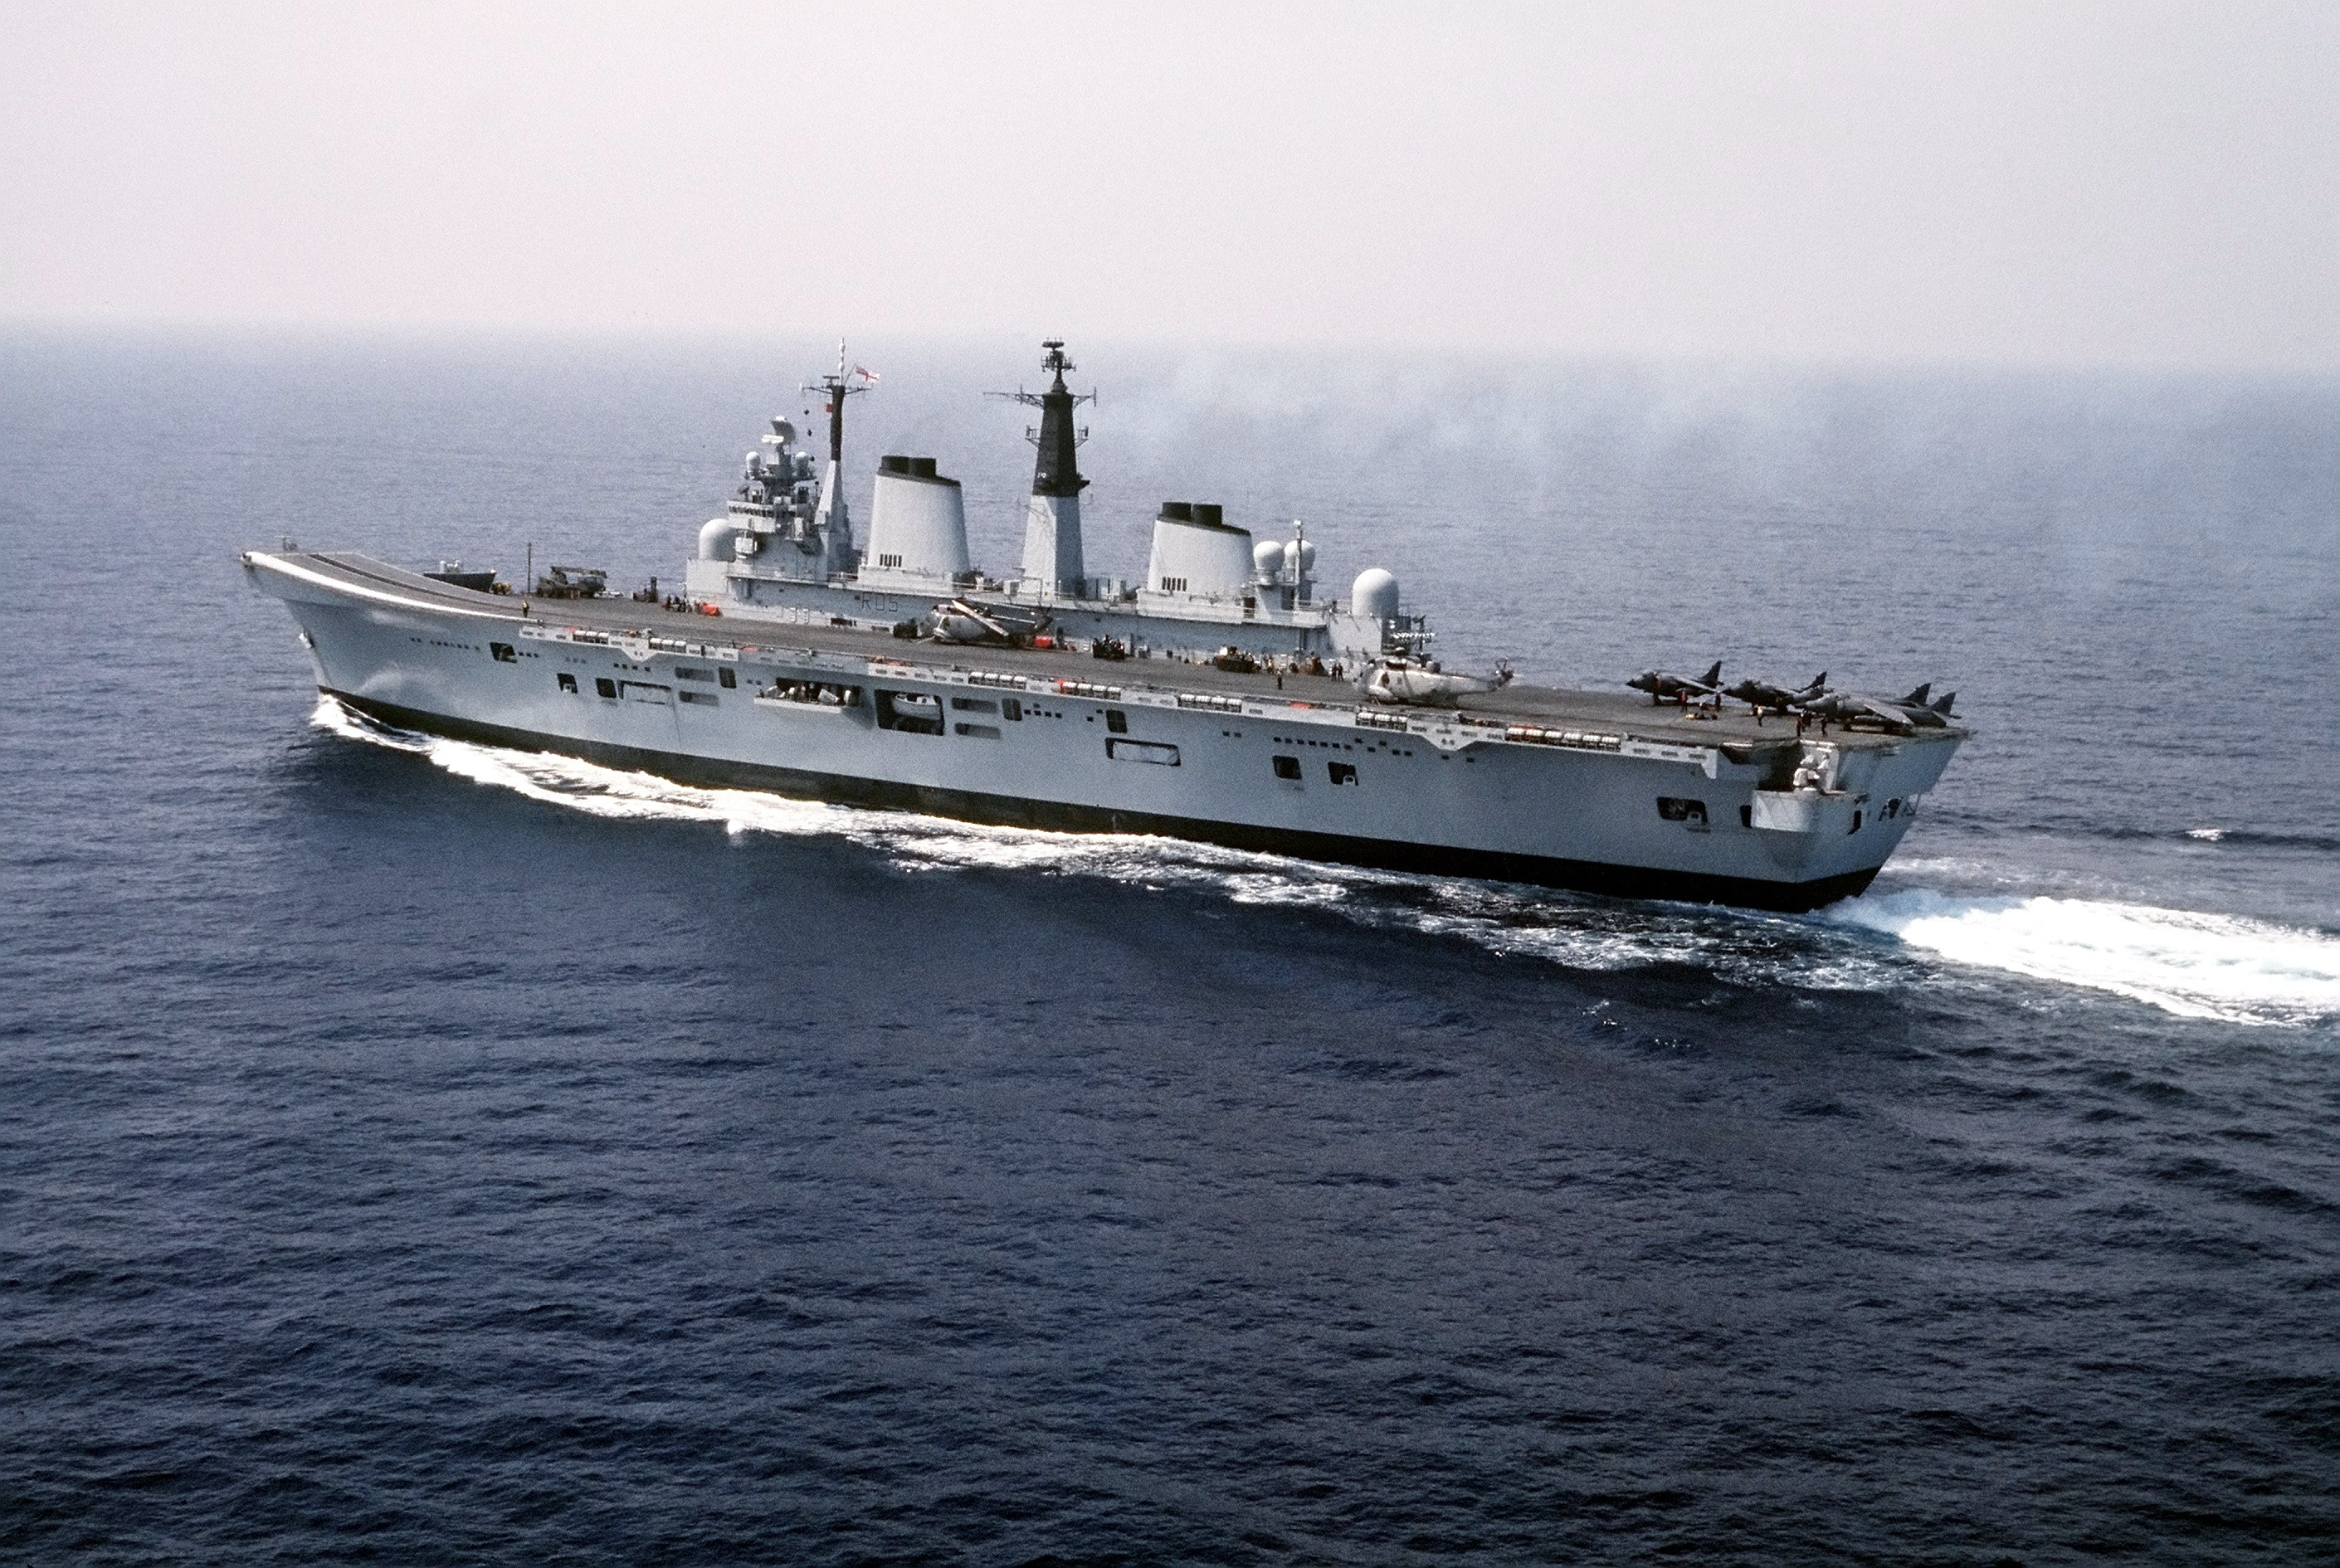 HMS_Invincible_(R05)_Dragon_Hammer_90